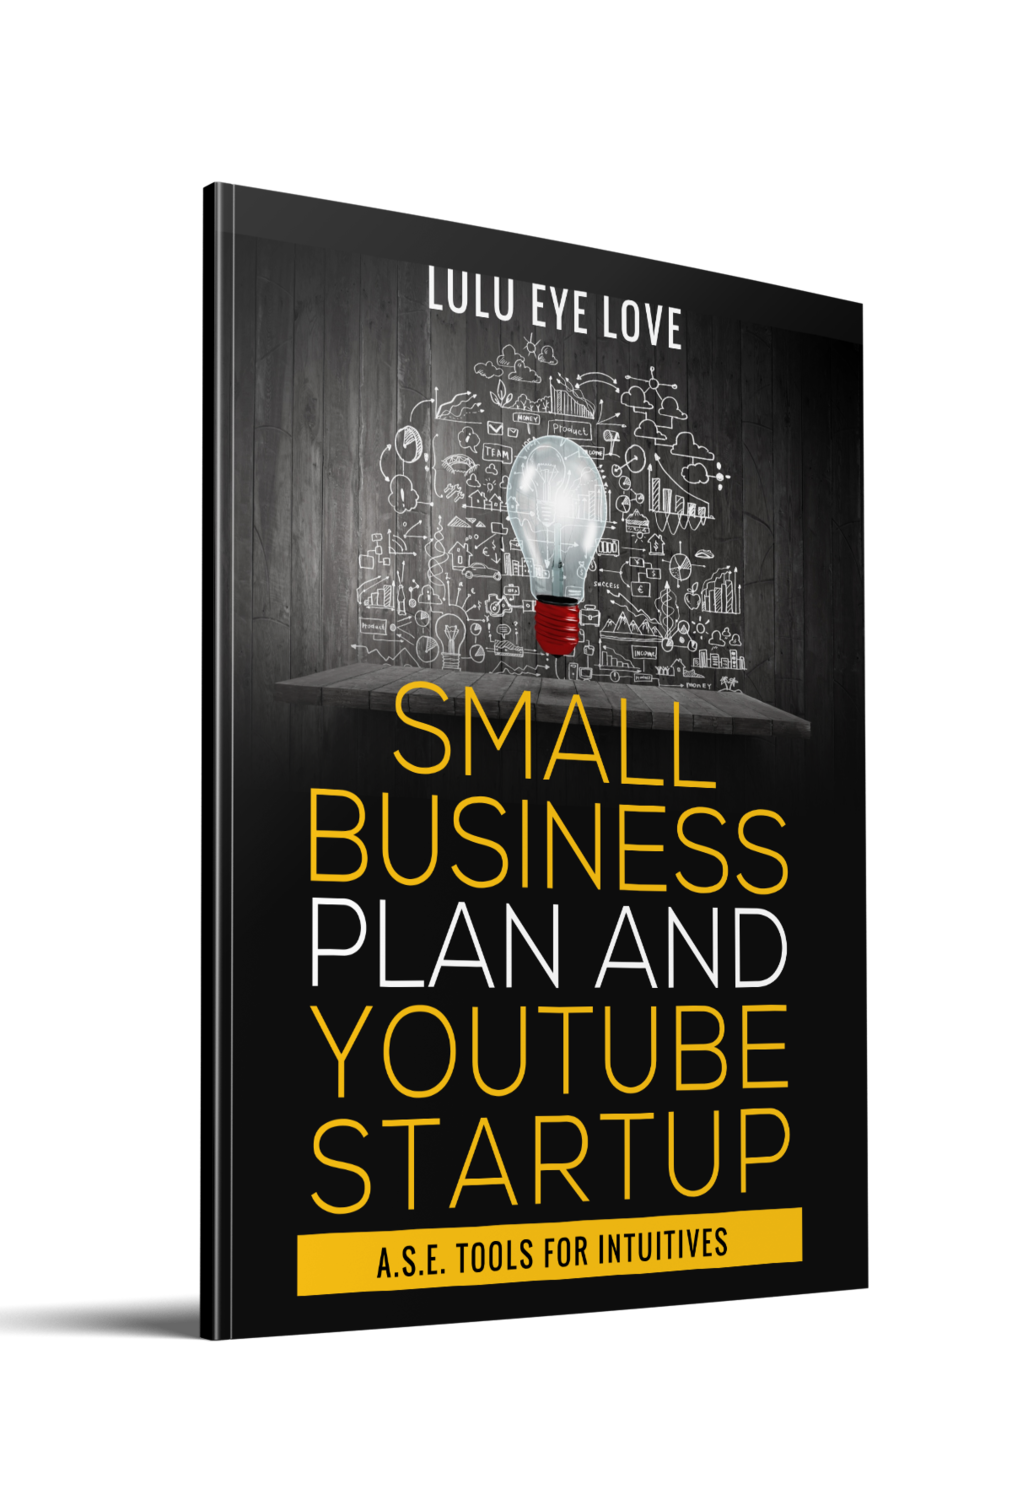 Small Business Plan & YouTube Startup